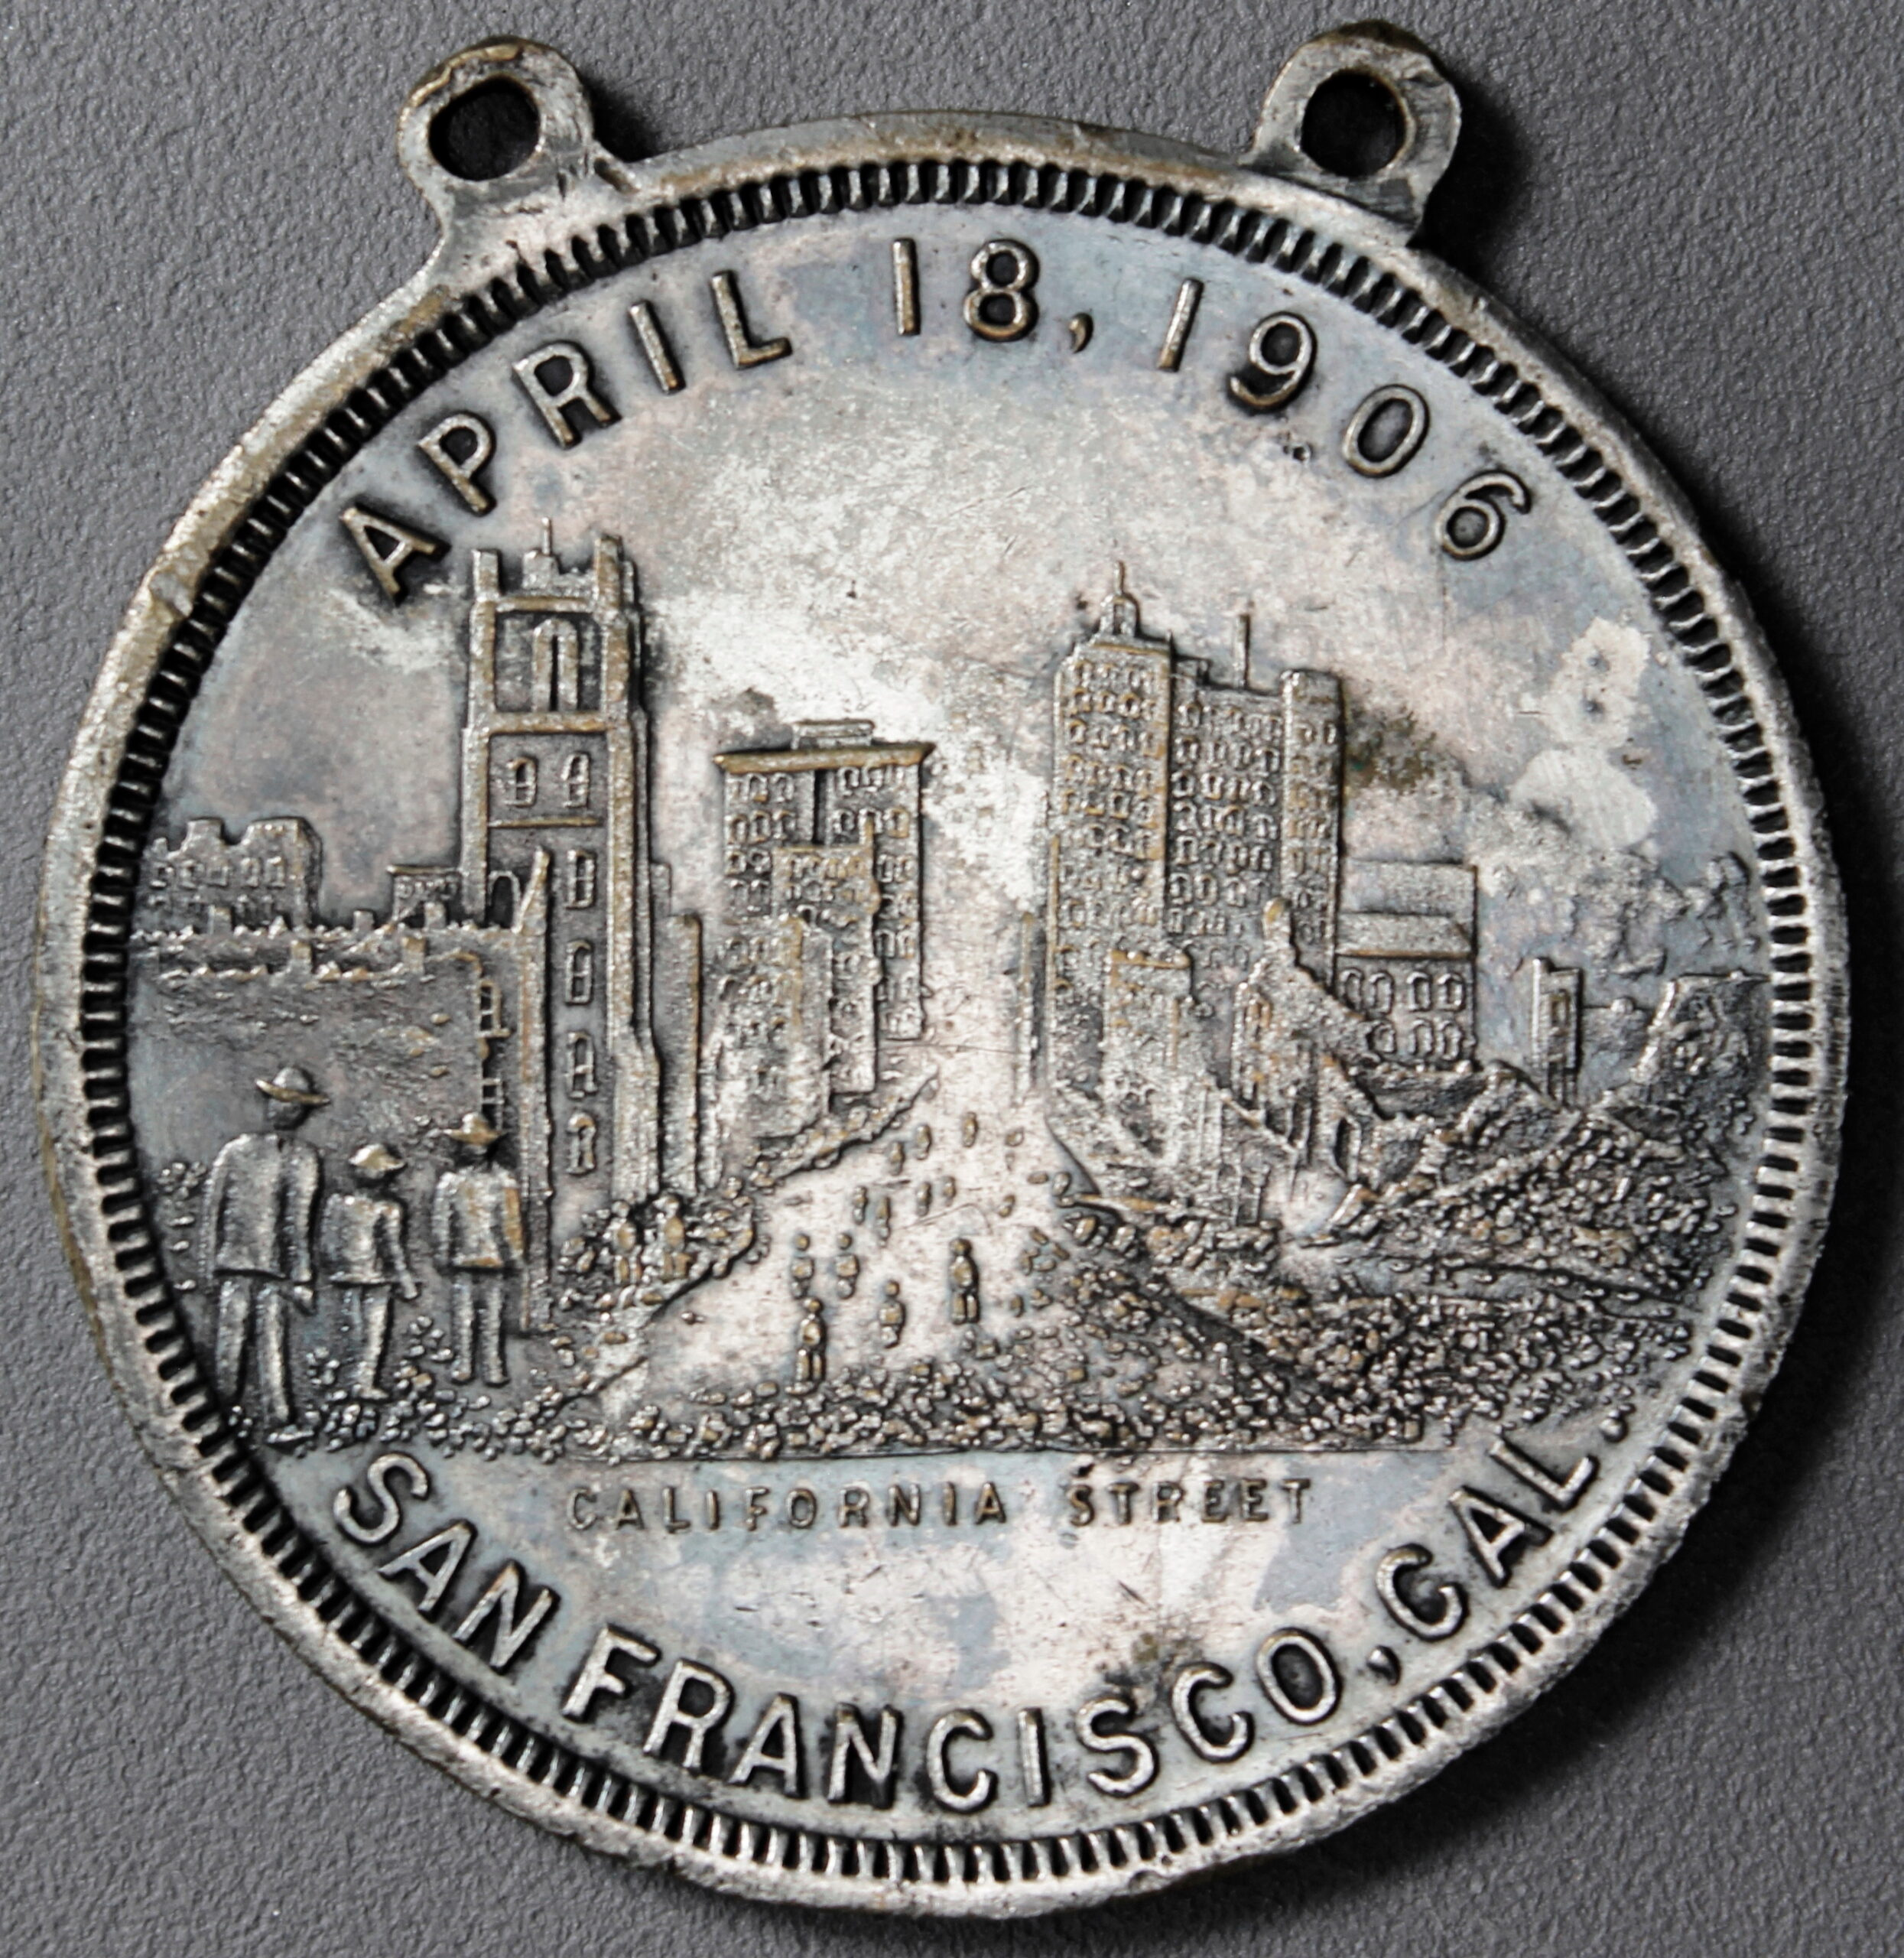 HK-340A 1906 San Francisco Disaster & Fire SCD – Silver Plated – variety not listed in H&K